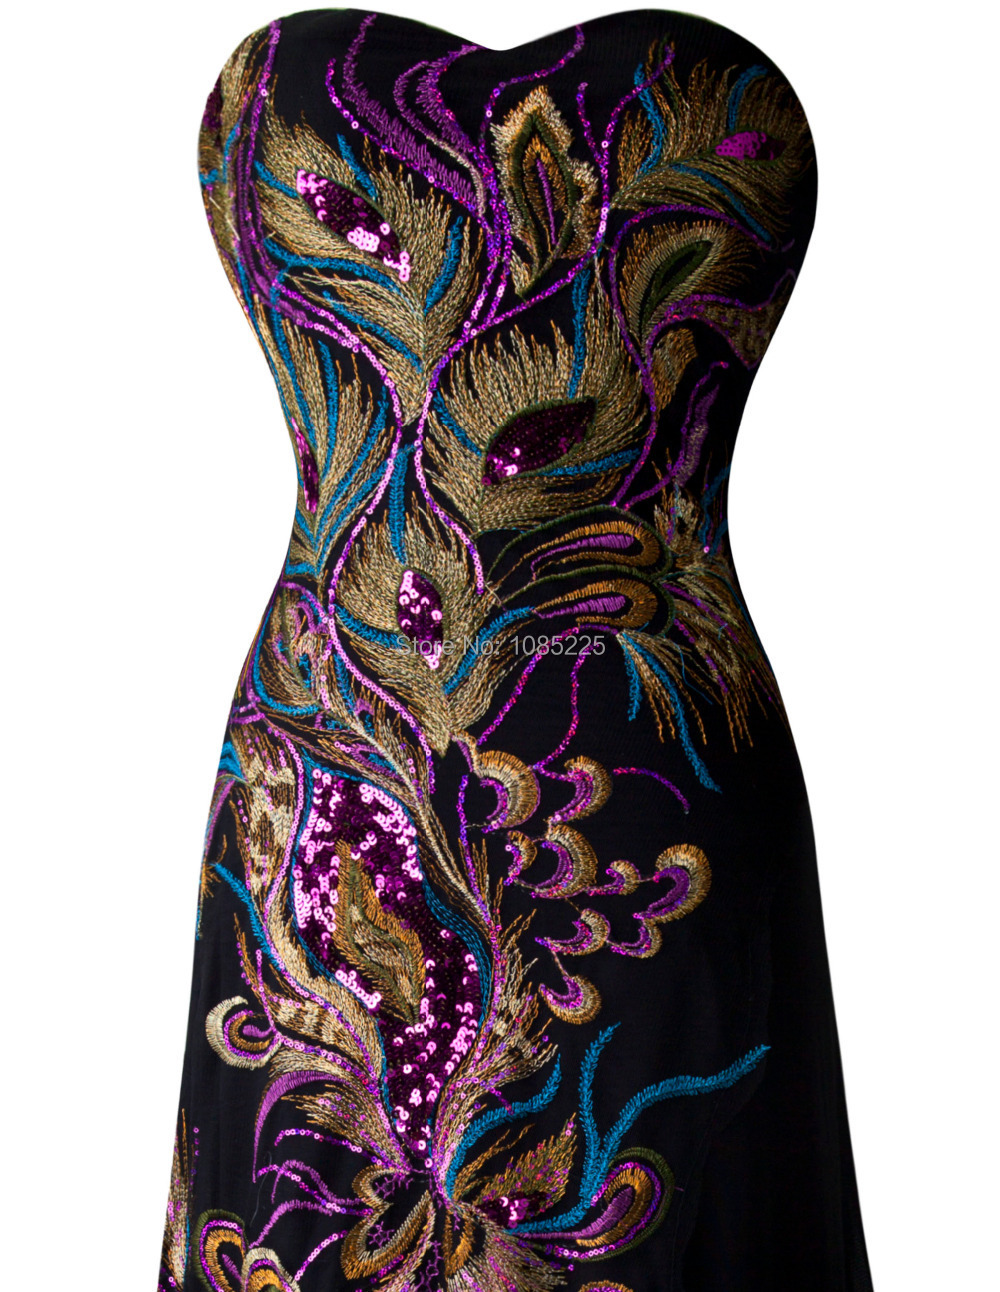 Peacock embroidery designs dress imgkid the